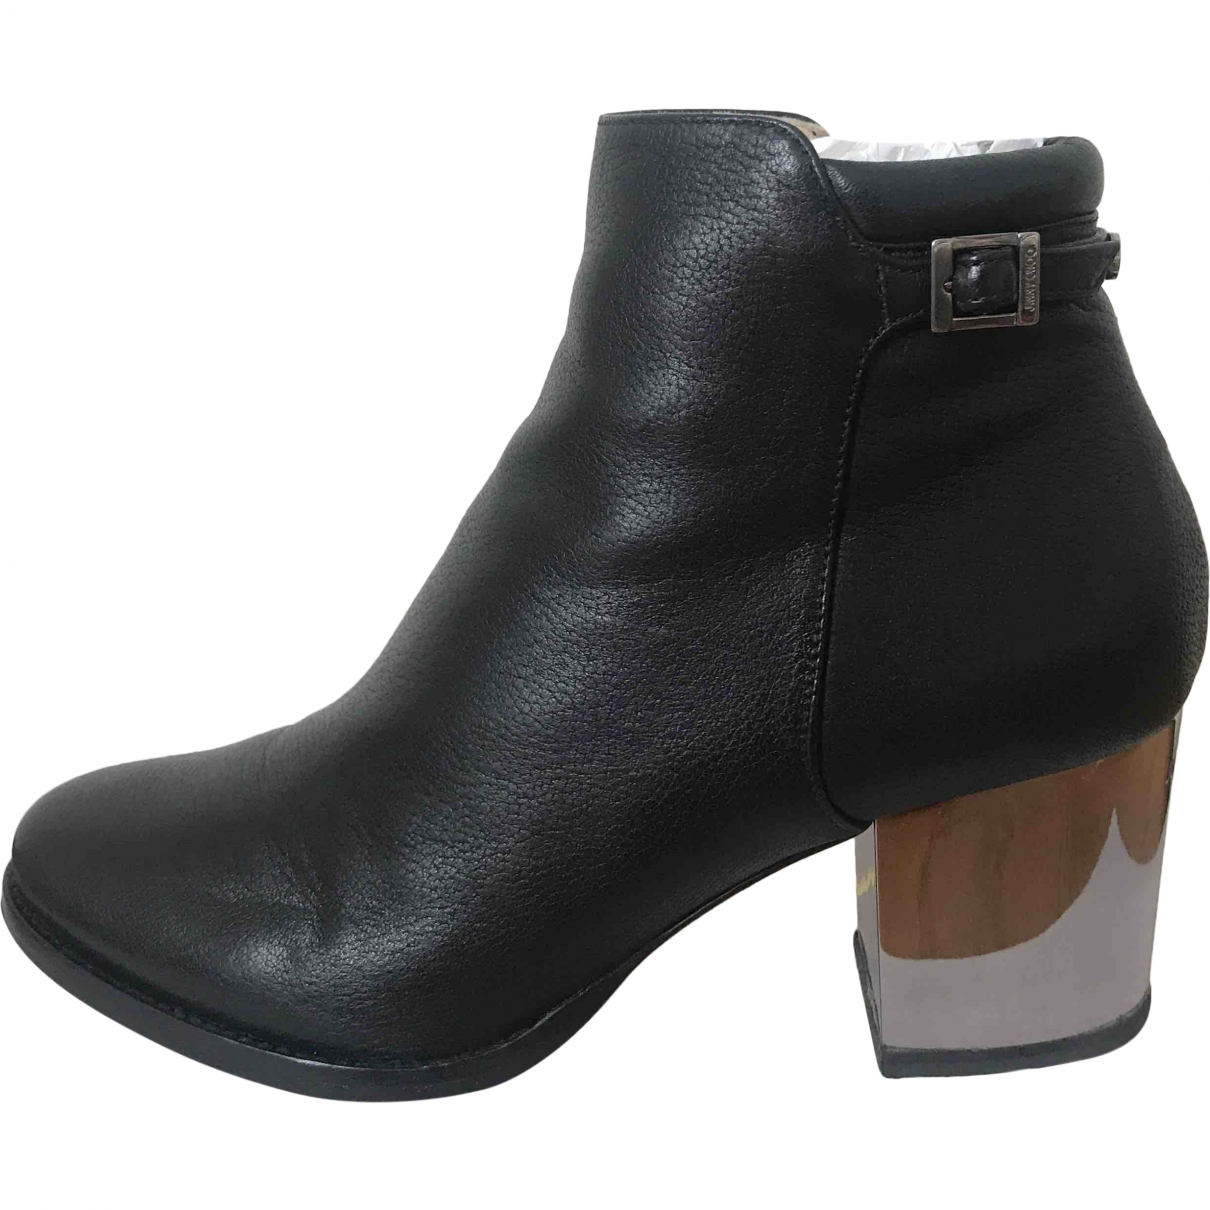 Jimmy Choo \N Black Leather Ankle boots for Women 38.5 EU